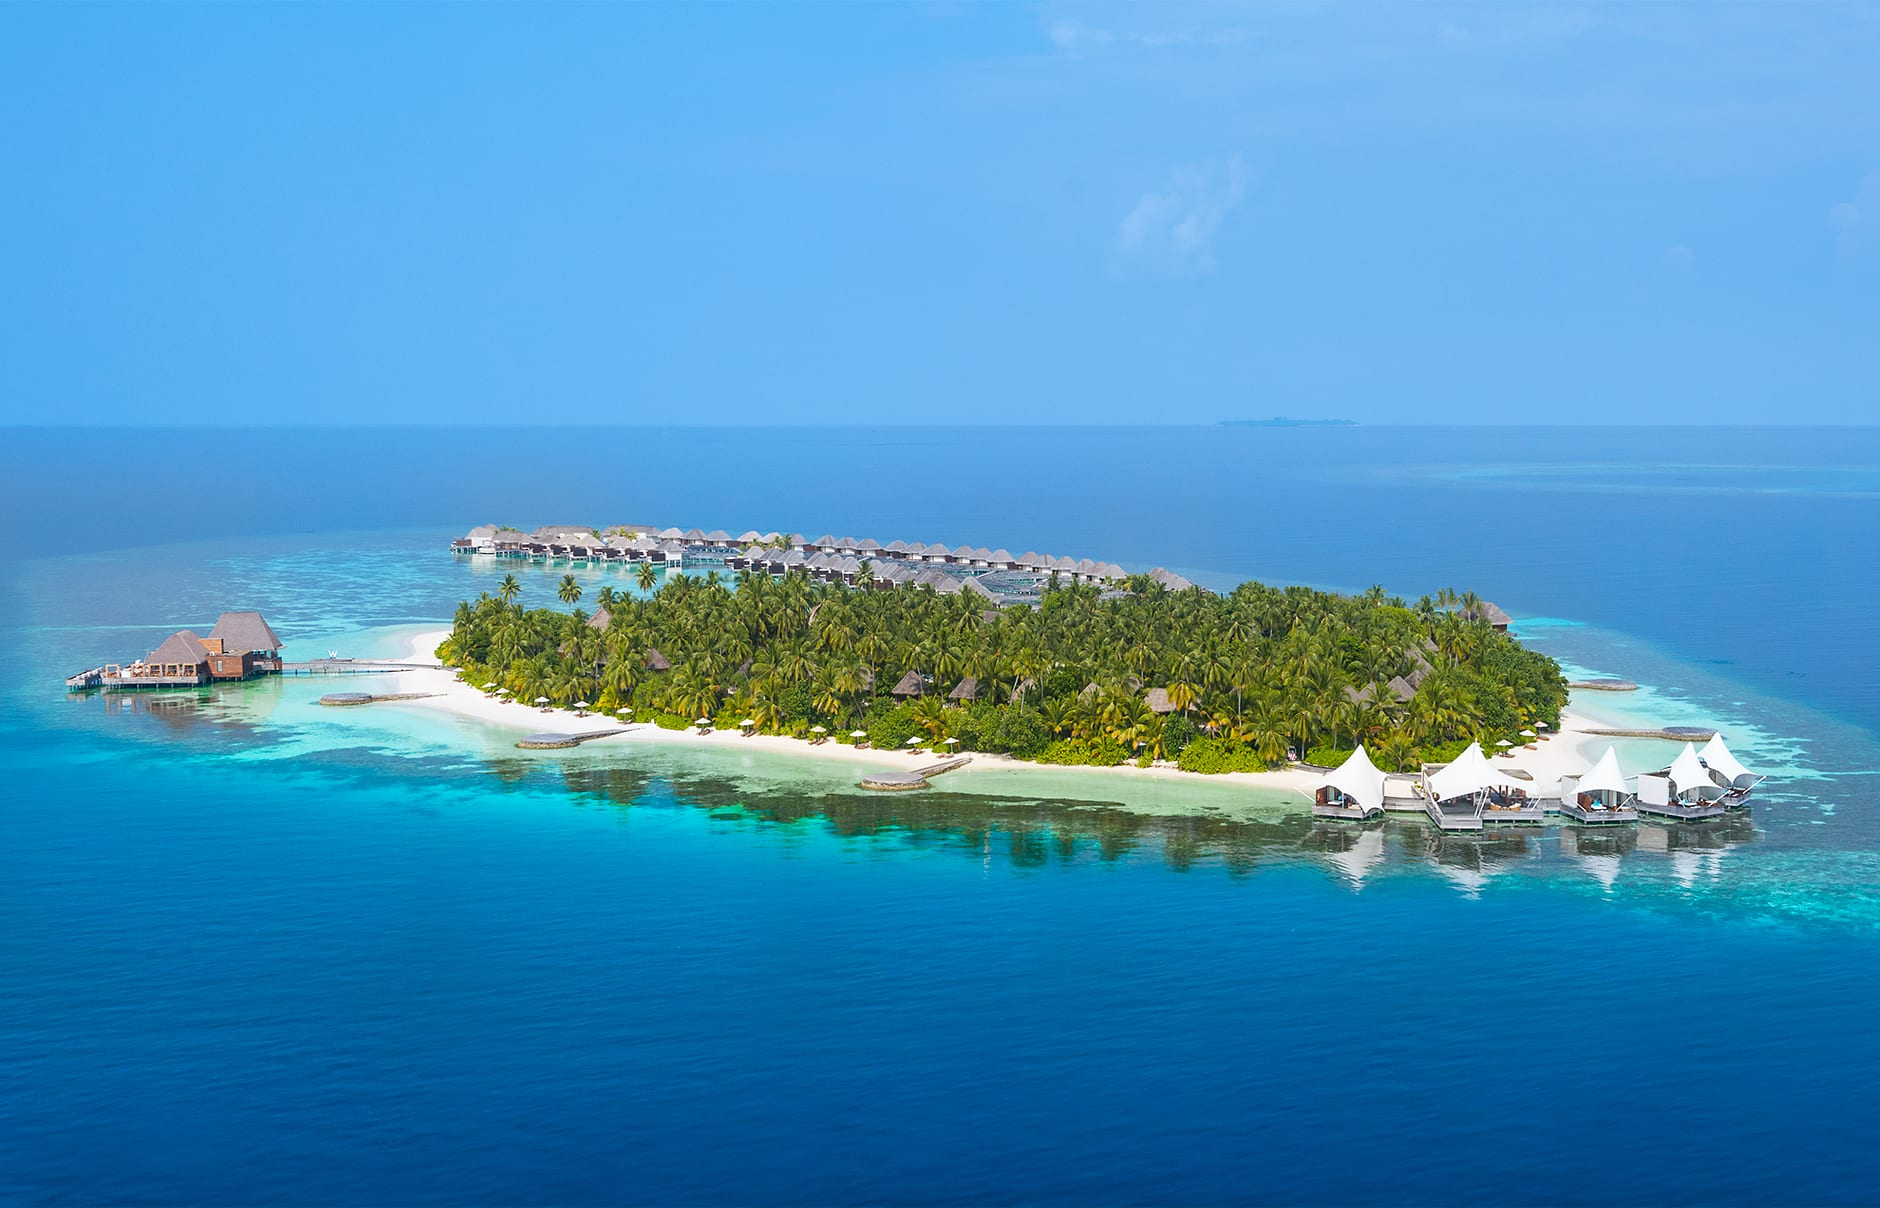 Aerial view. W Maldives, Fesdu Island, Maldives. Hotel Review by TravelPlusStyle. Photo © Marriott International